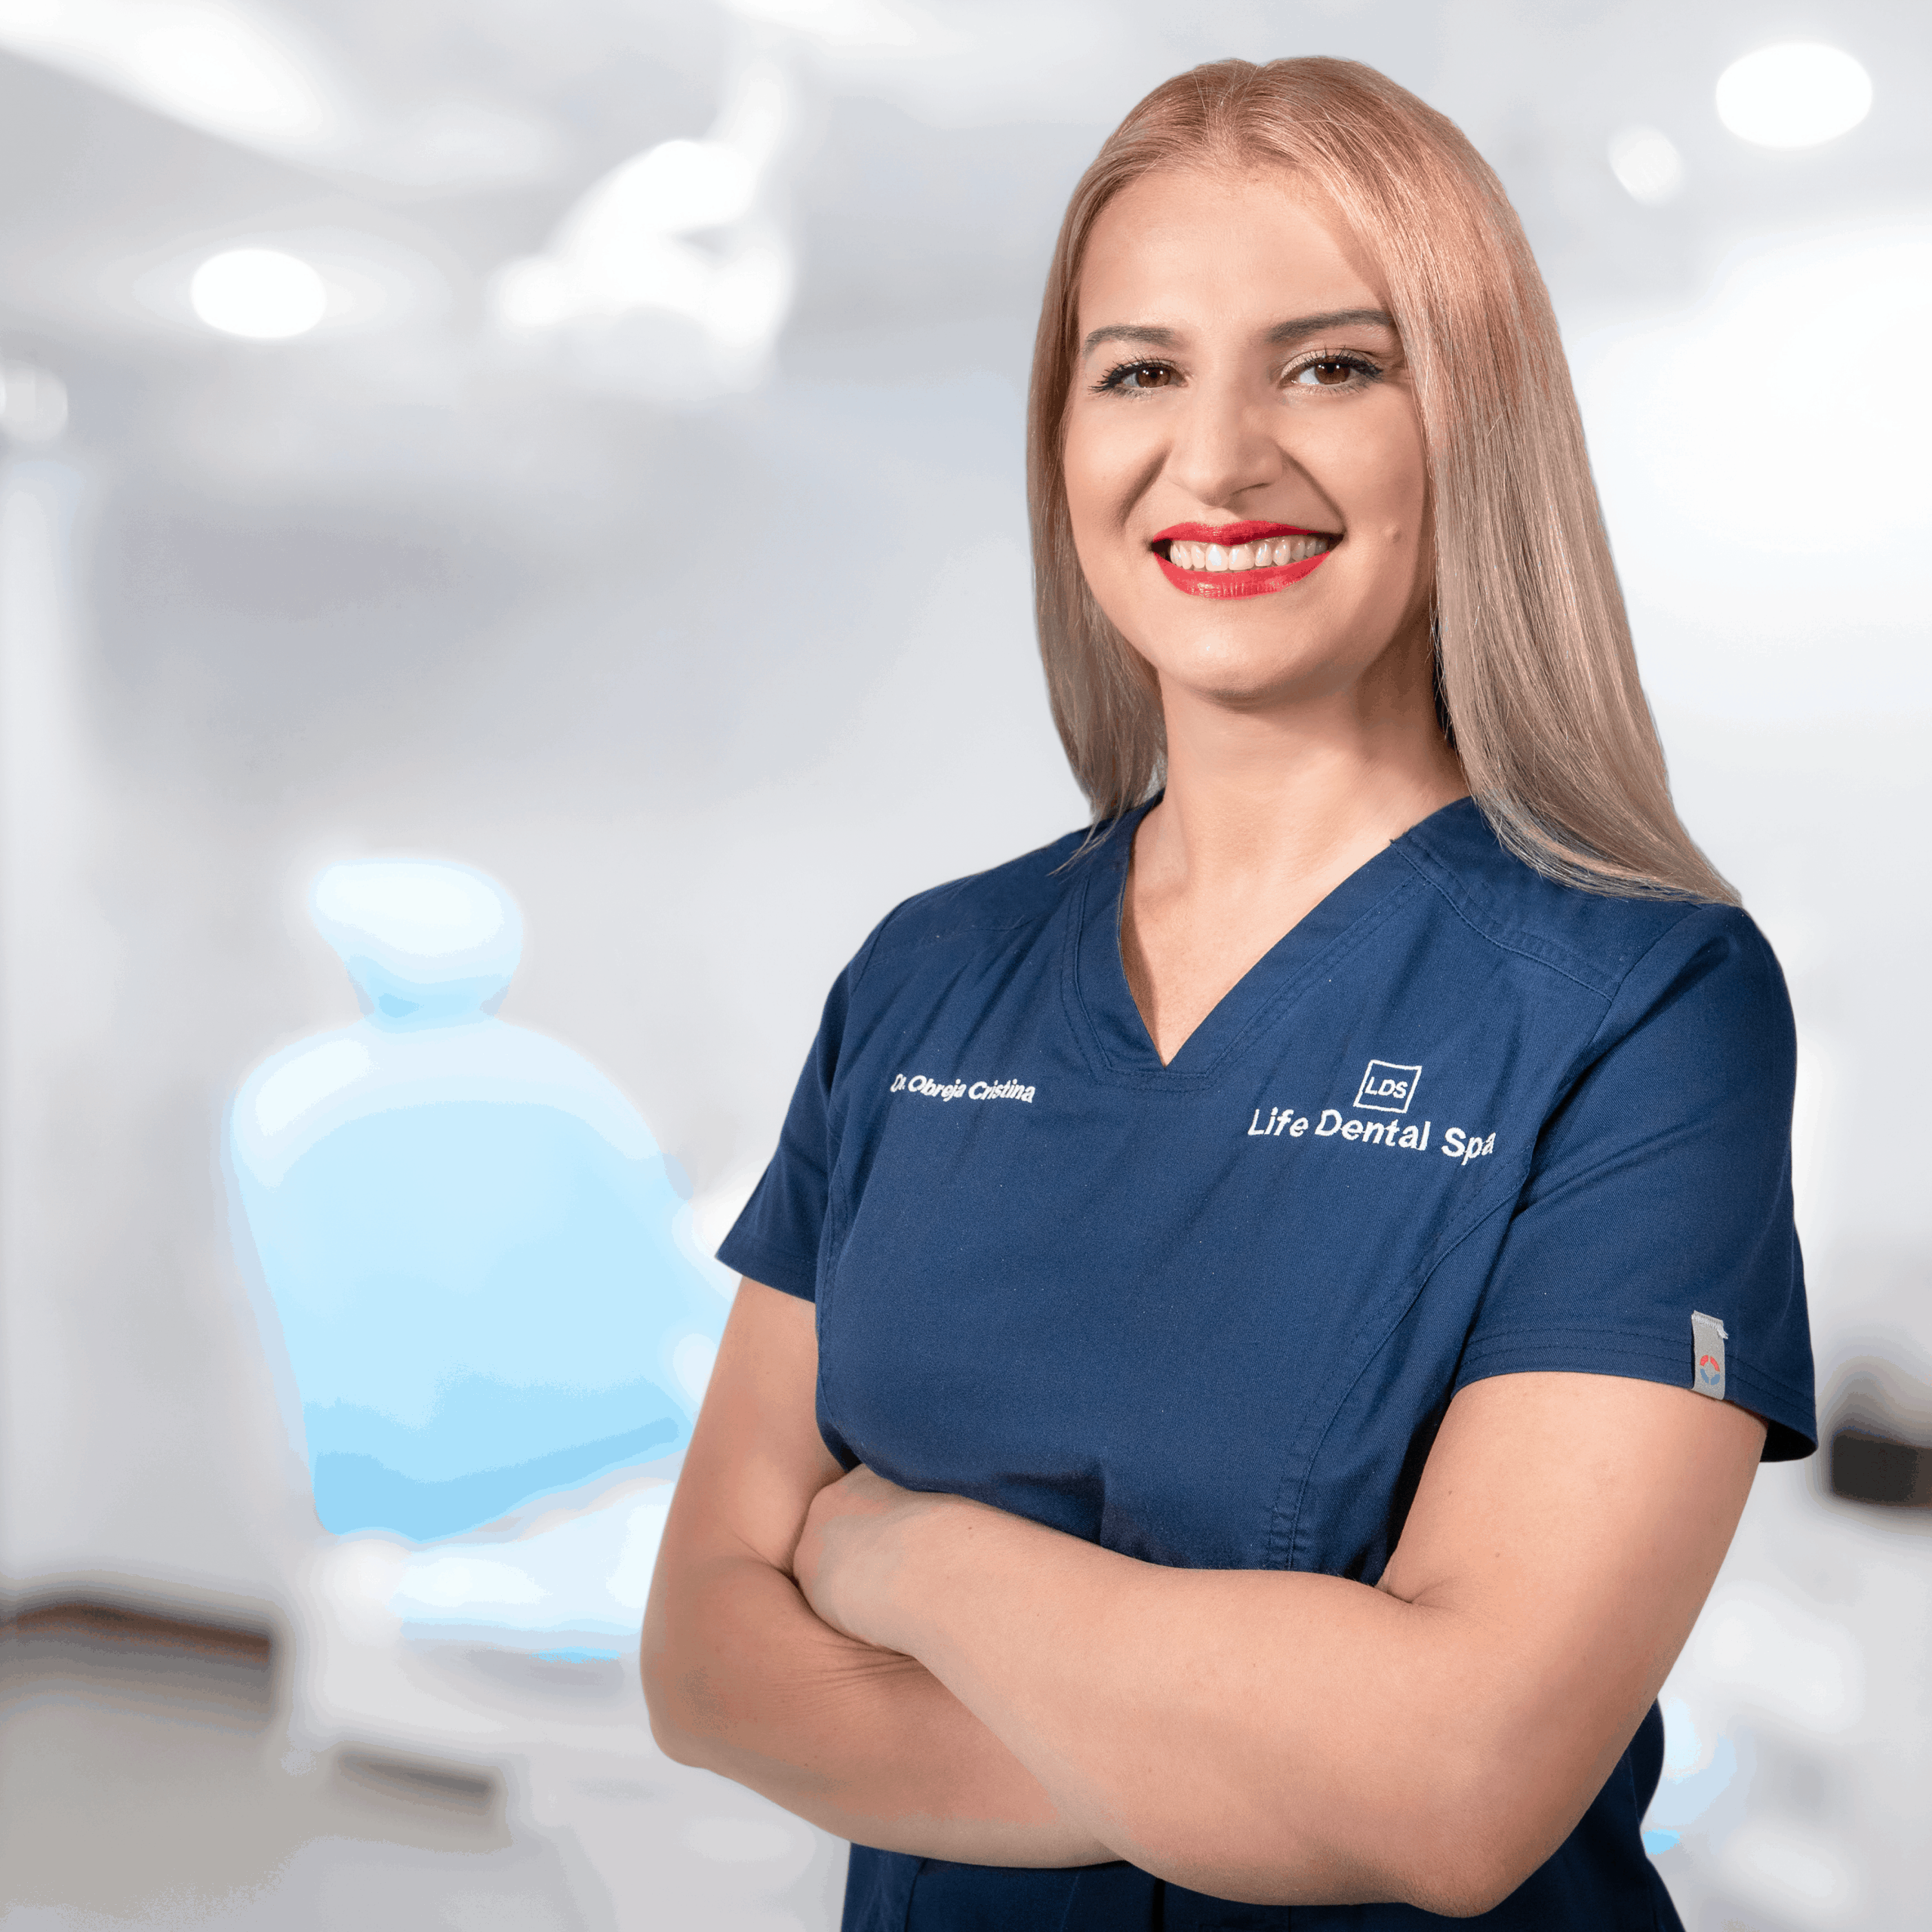 Dr Cristina Obreja Life Dental Spa